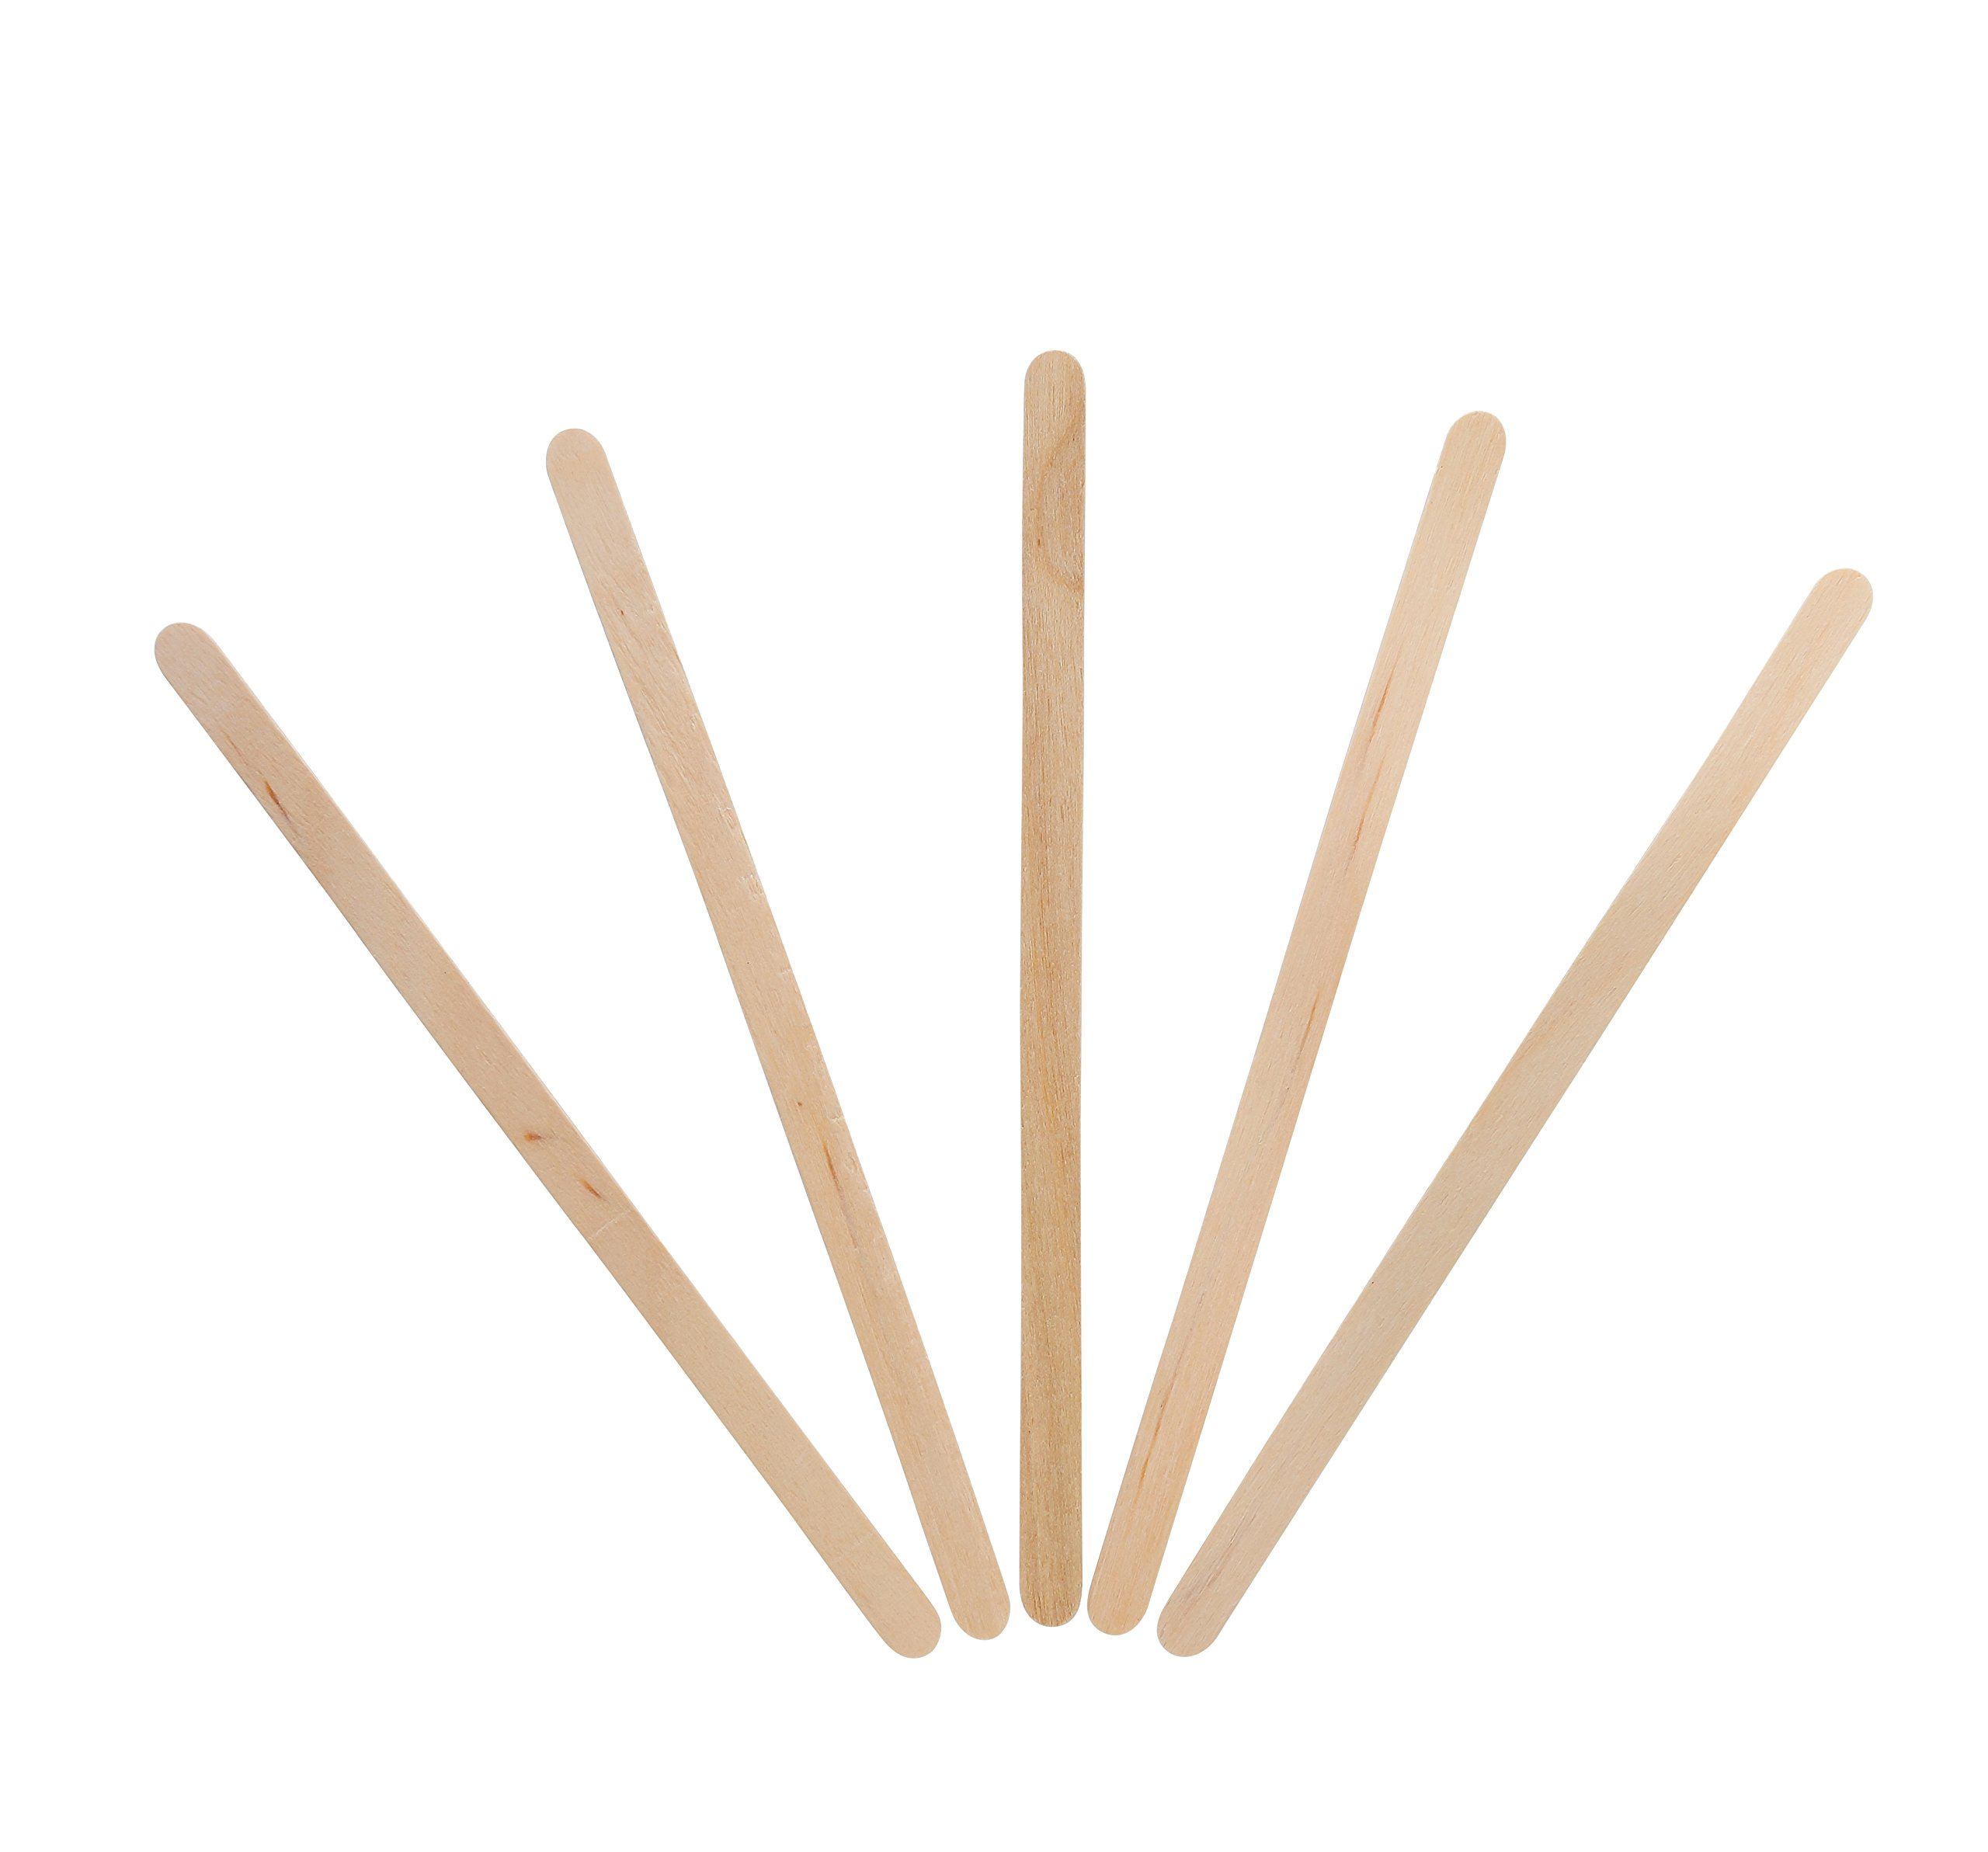 KingSeal Natural Birch Wood Coffee Beverage Stirrers - 5.5 Inches, Round End, 10 Packs of 1000 each per Case by KingSeal (Image #3)